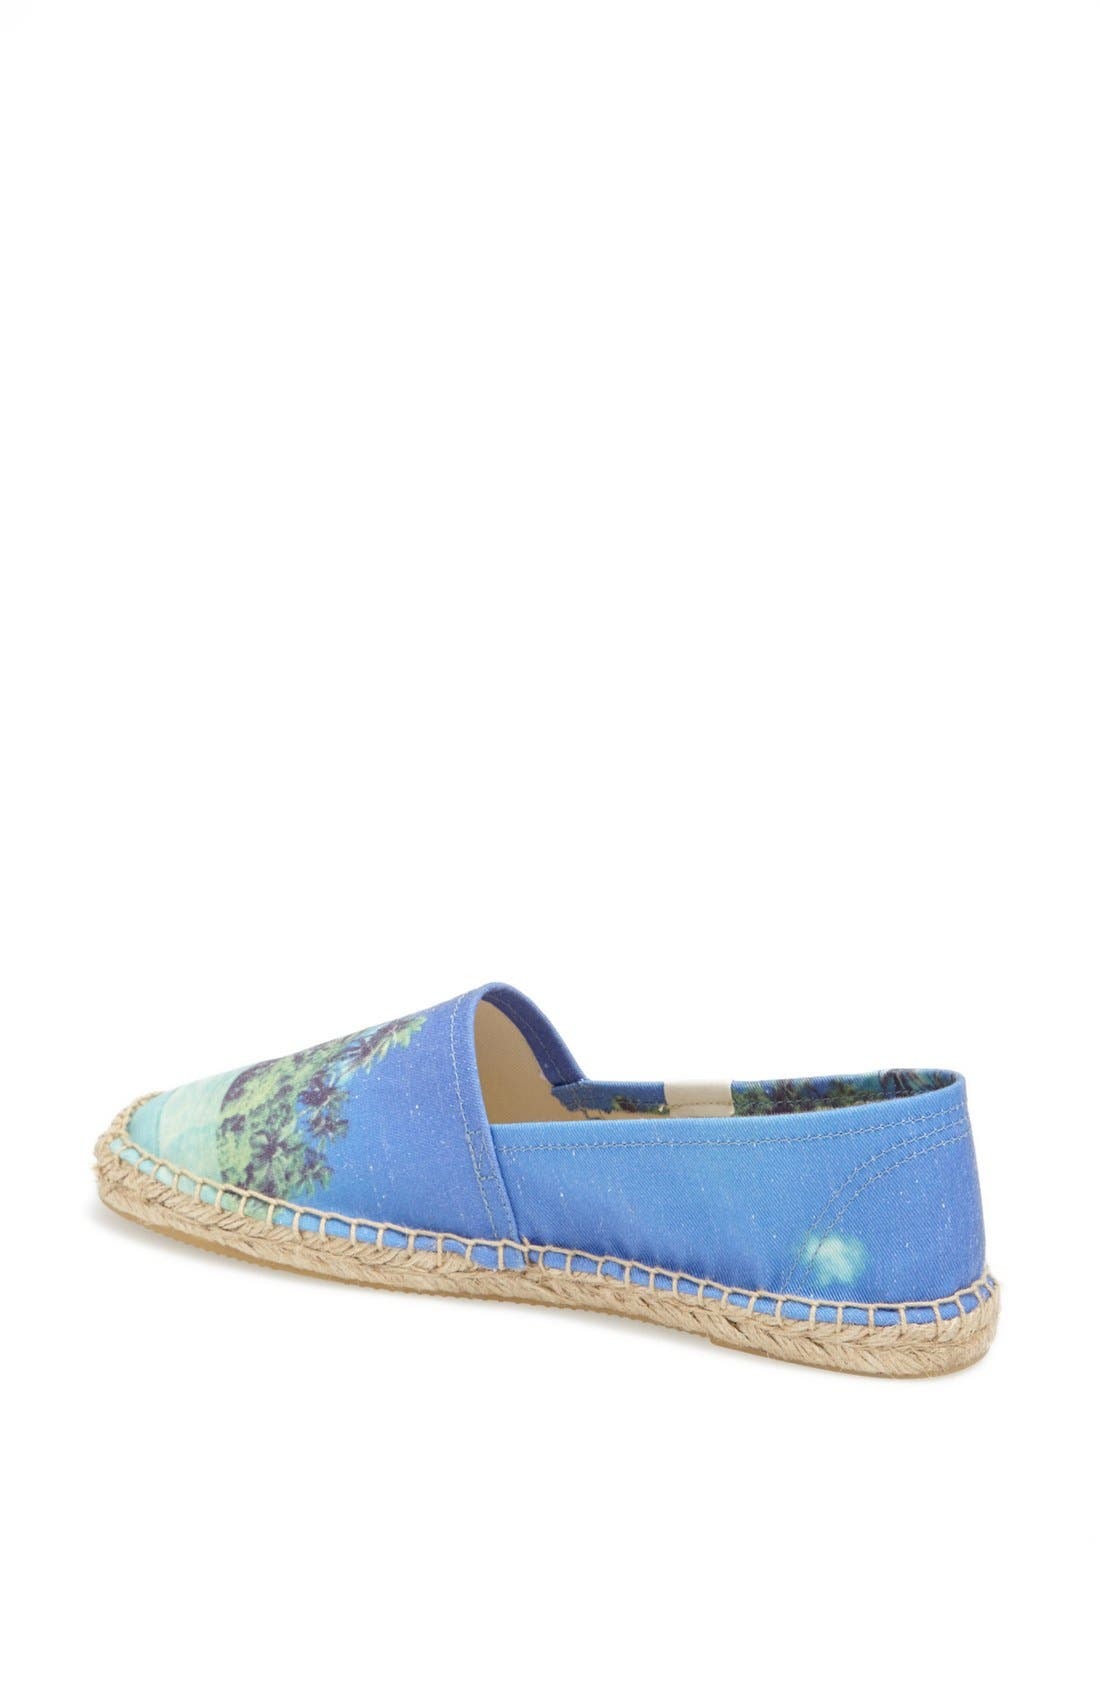 Alternate Image 2  - We Are Handsome x Soludos Slip-On (Limited Edition) (Women)